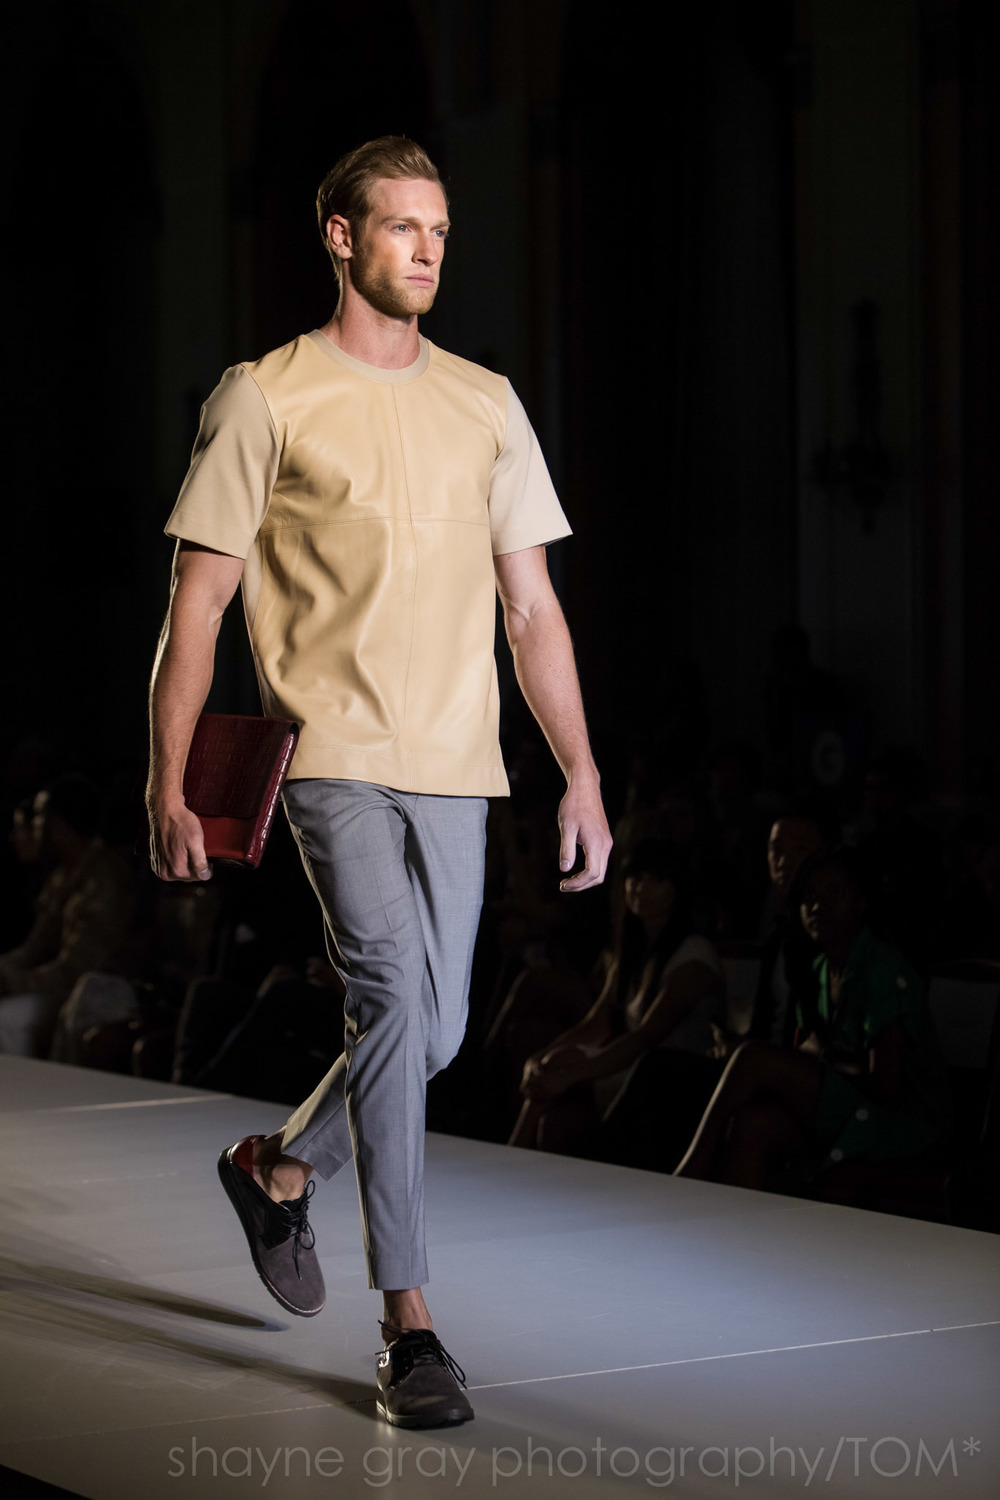 Shayne-Gray-Toronto-men's-fashion_week-TOM-noel-crisostomo-8463.jpg